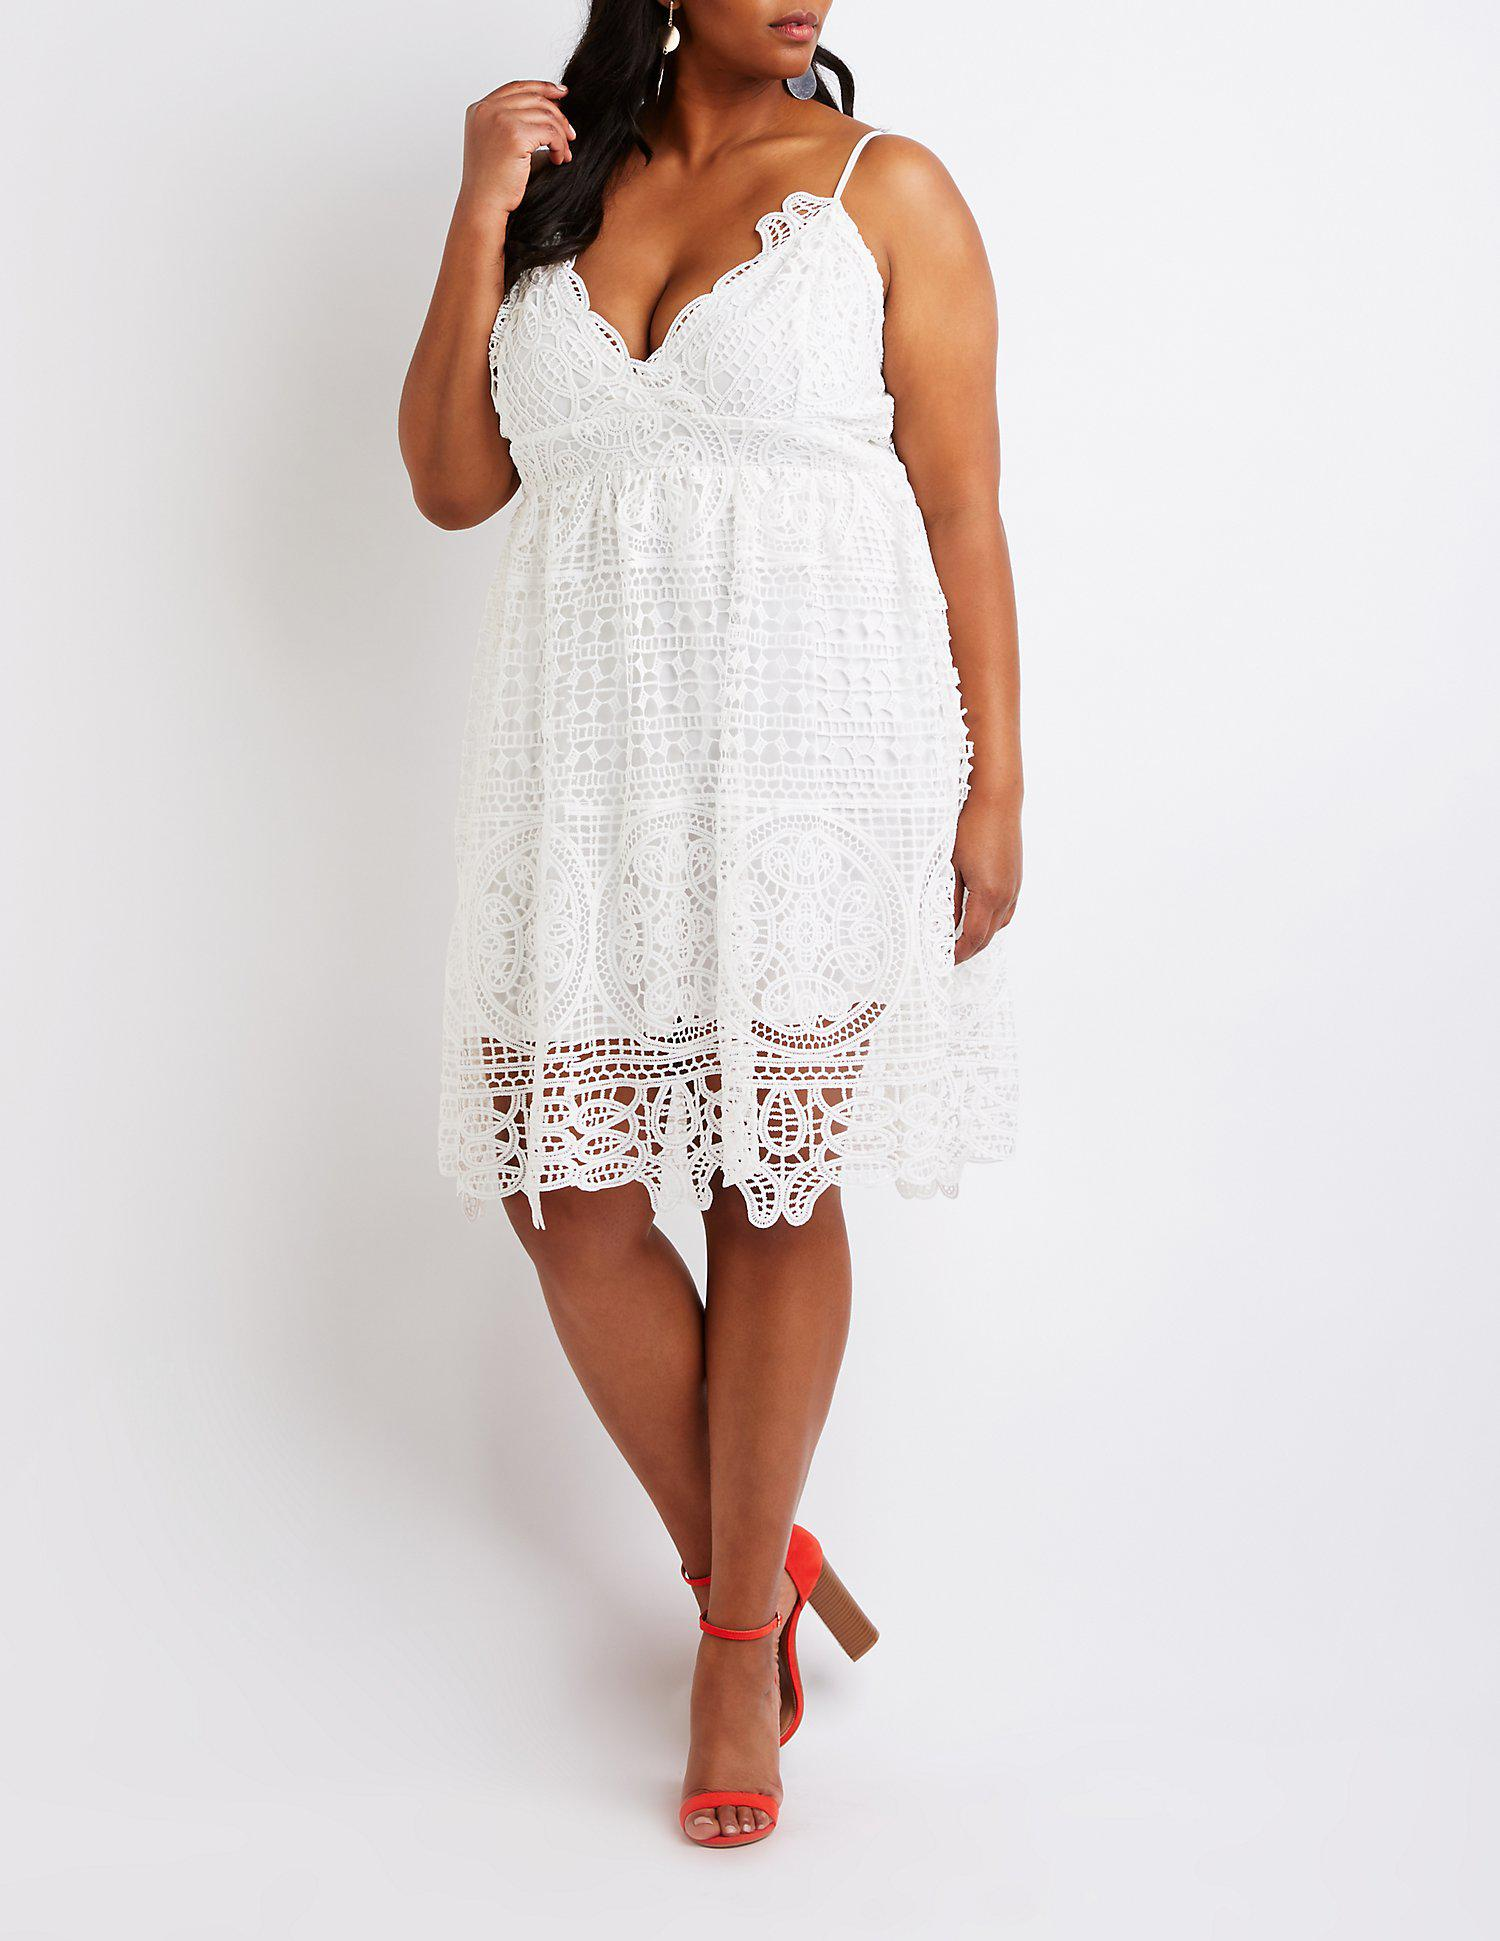 729b52509ee Gallery. Previously sold at  Charlotte Russe · Women s Crochet Dresses ...